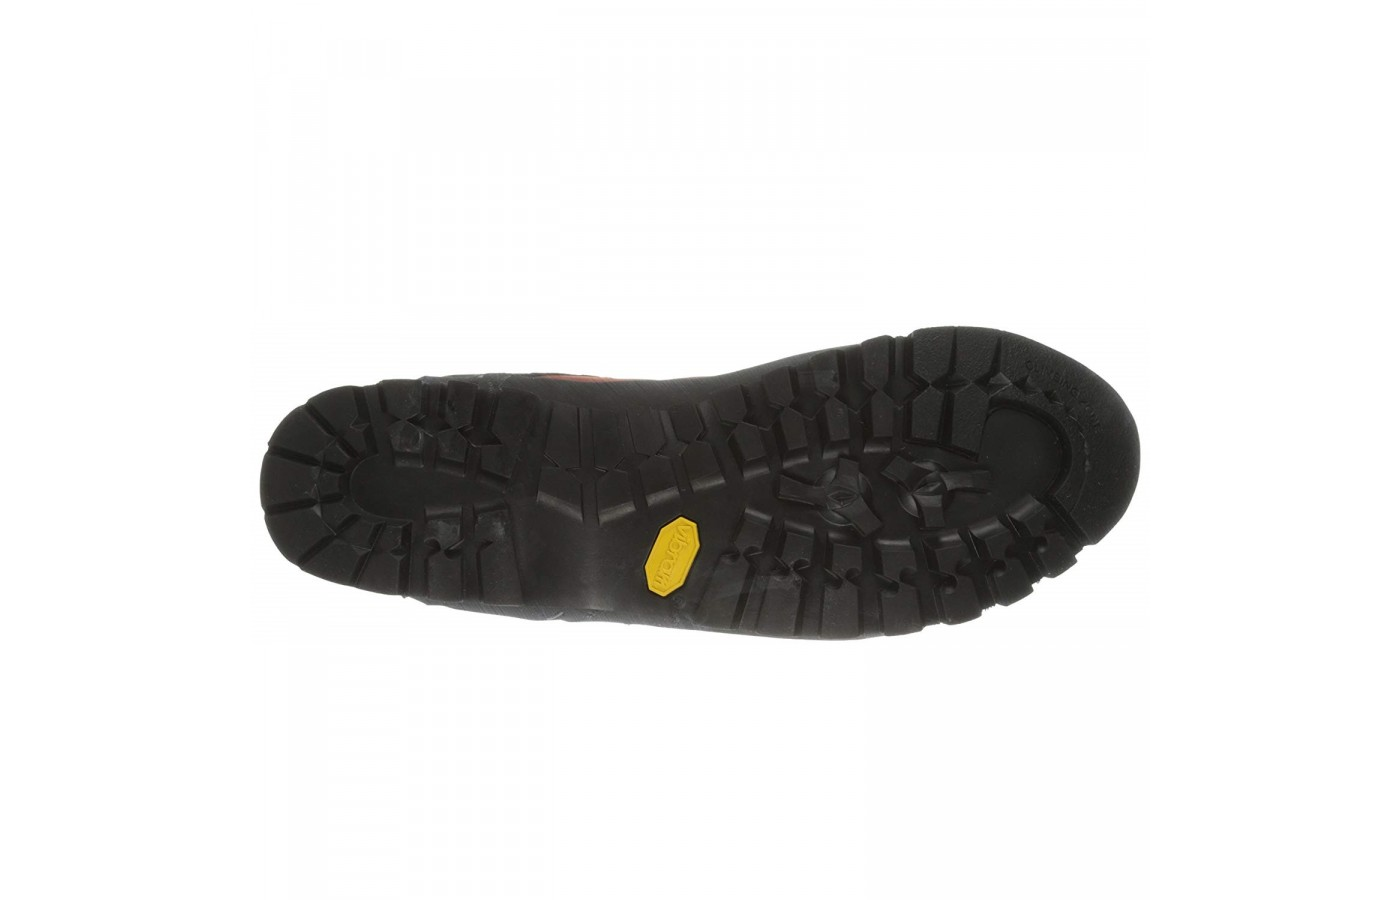 The Salewa Rapace GTX a Vibram® WTC outsole for the ultimate grip and traction.